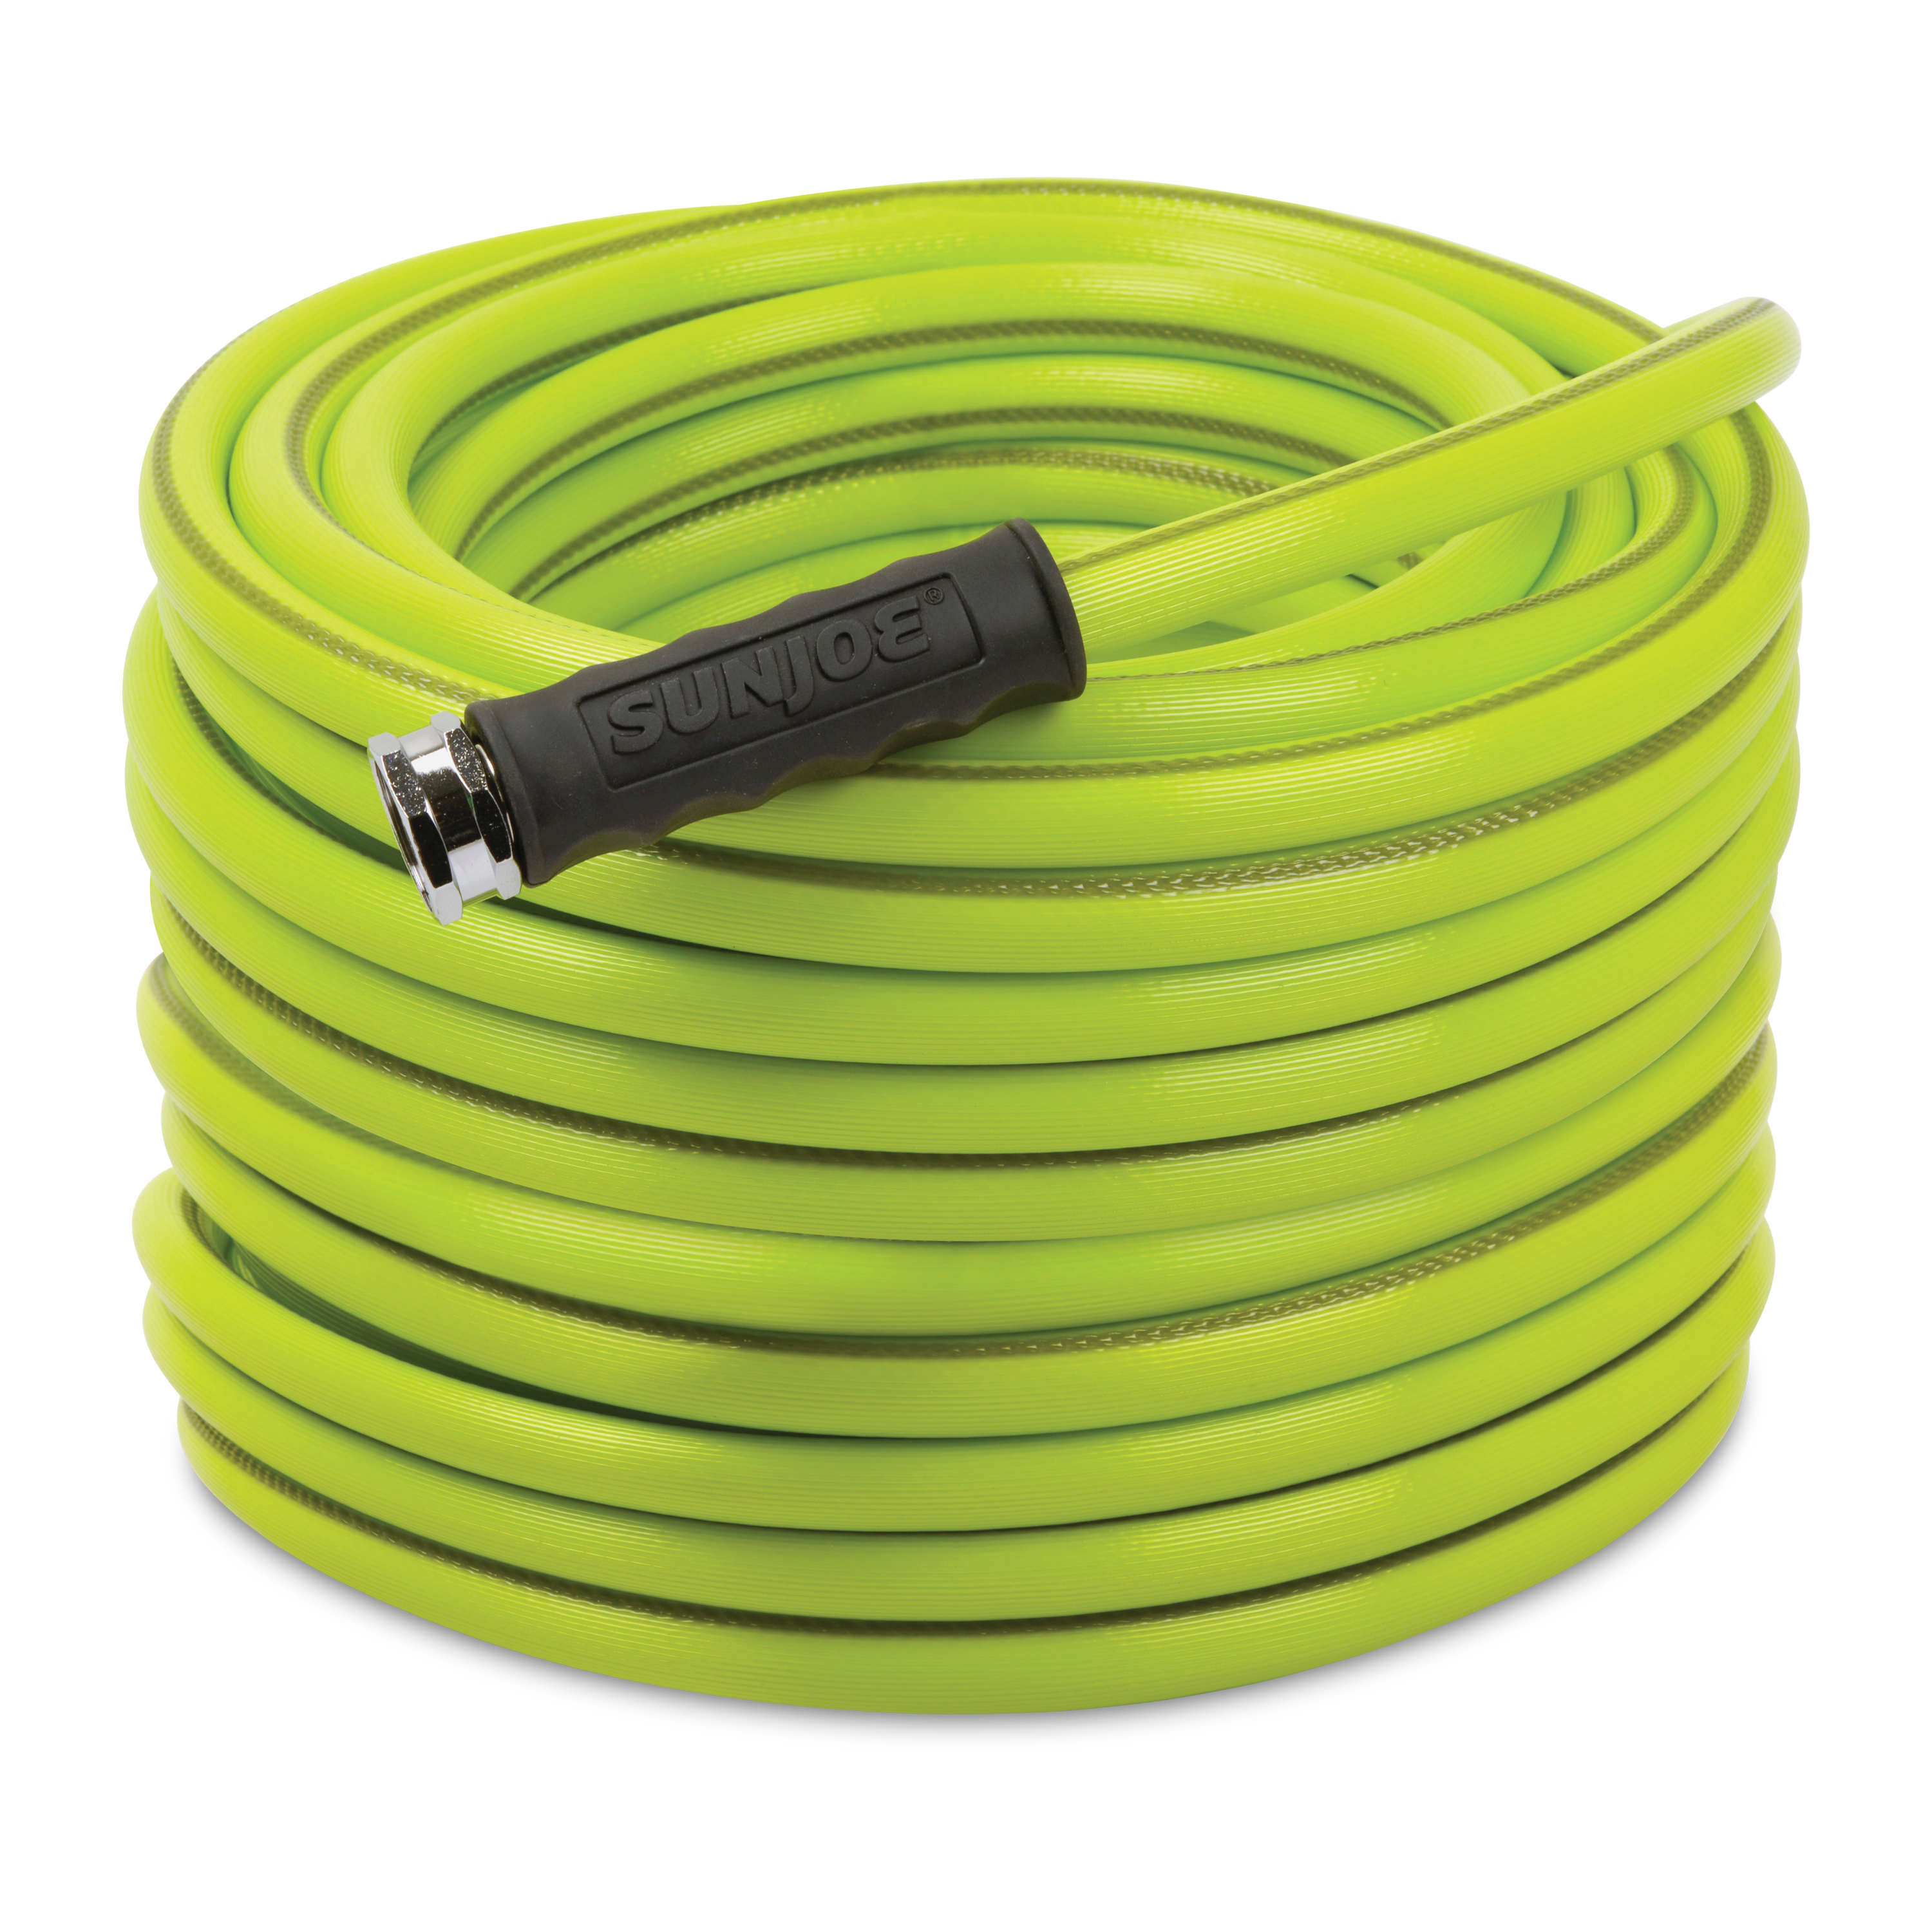 Sun Joe Ajh12-100 Heavy-duty Garden Hose 100-foot 1 2- Flow